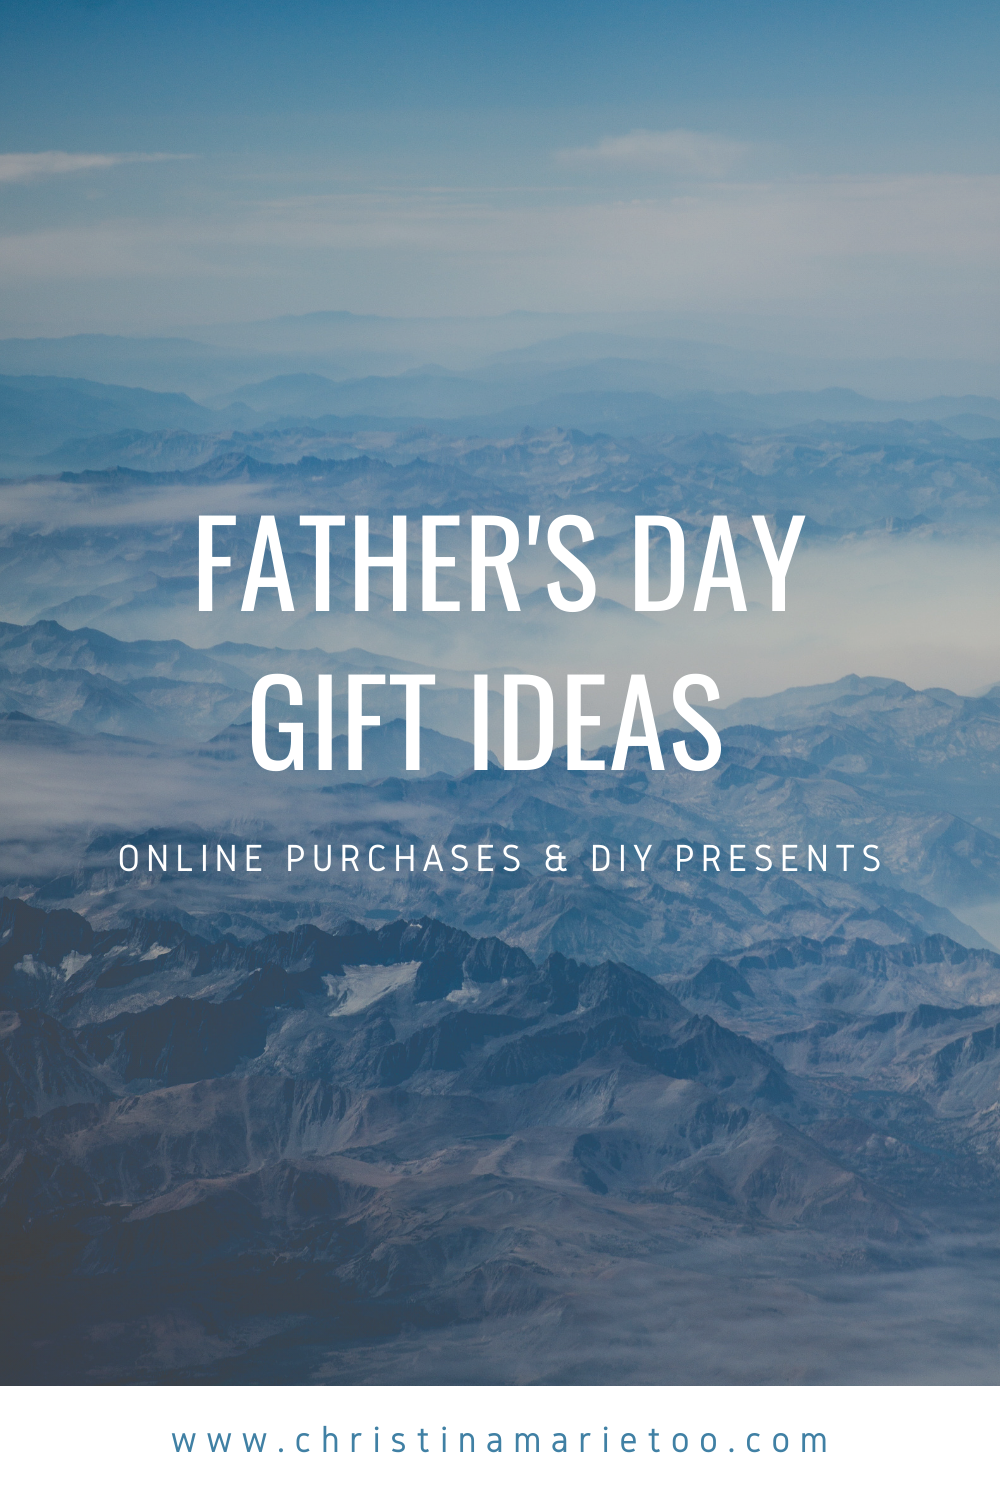 Father's Day Gift Ideas main image